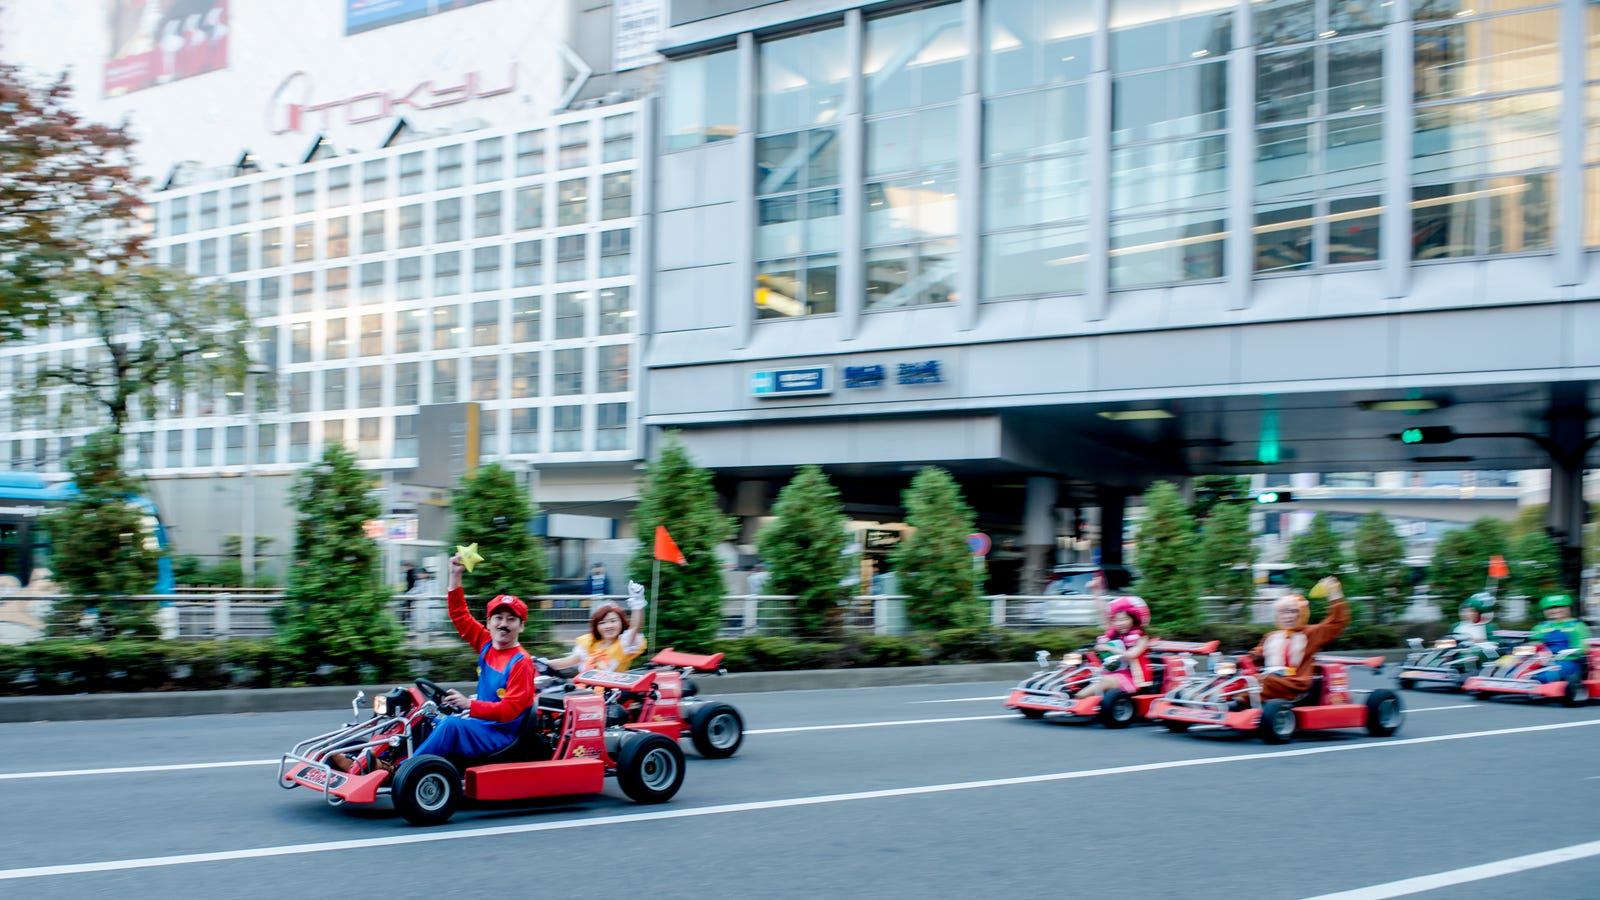 Mario Kart Drivers In Japan Will Soon Be Required To Wear Seat Belts